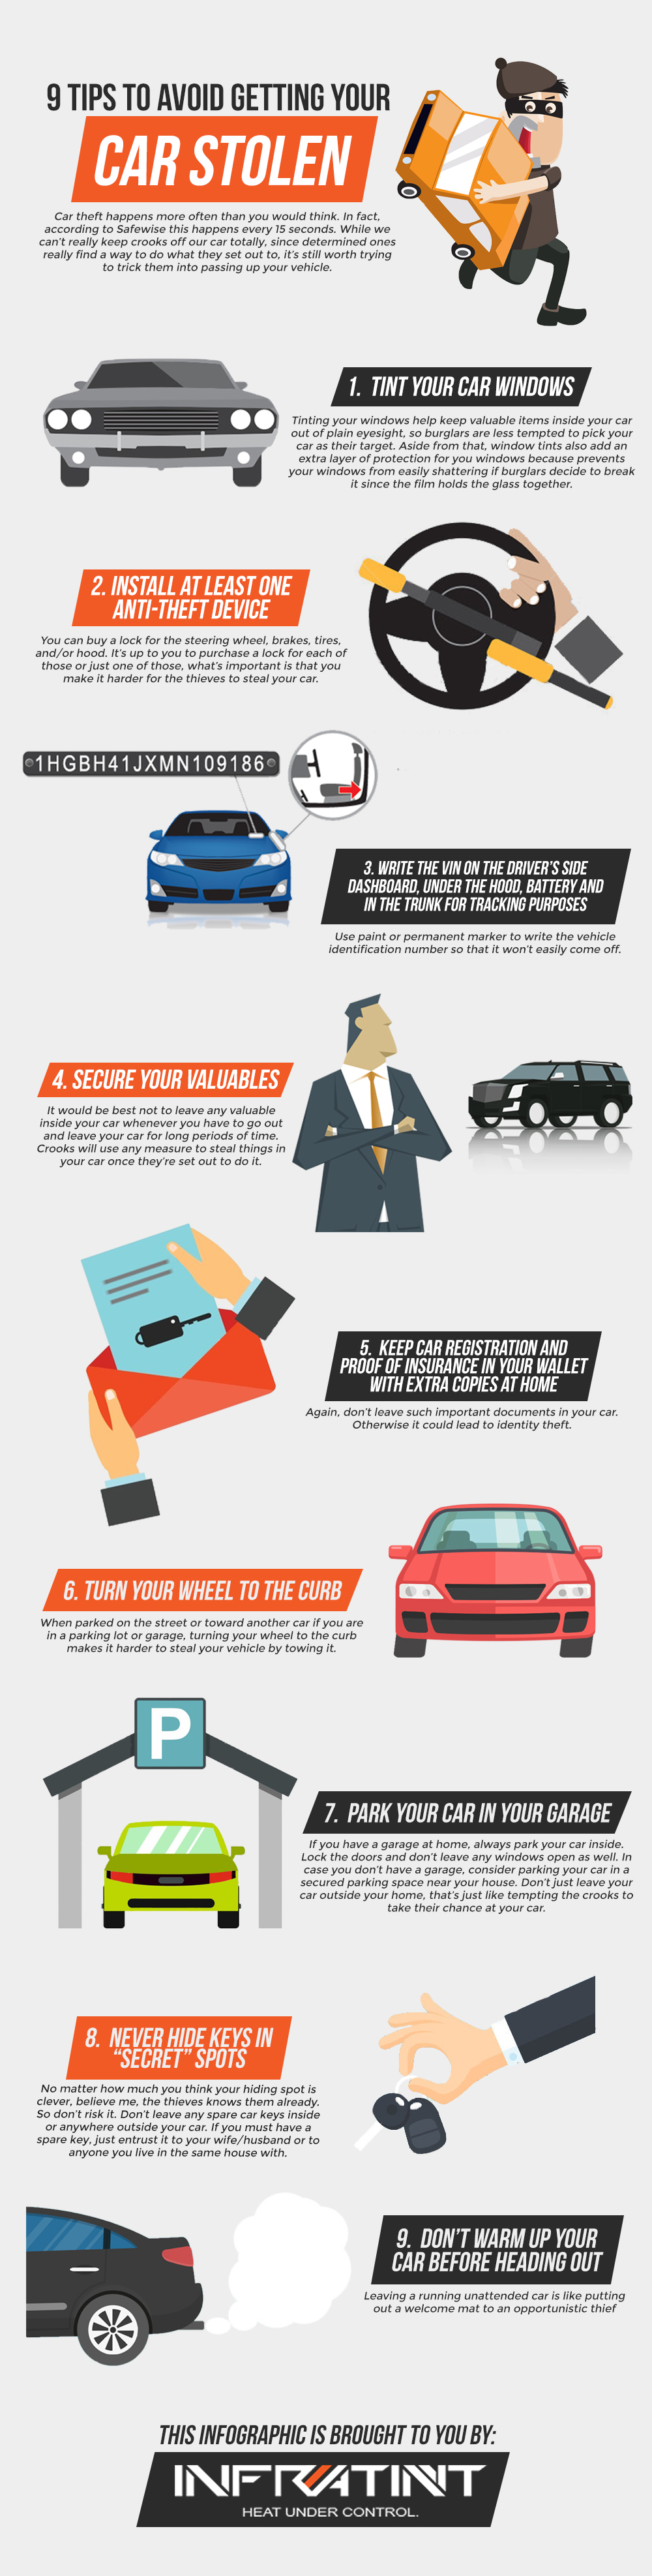 Car Theft Happens More Often Than You Would Think In Fact According To Safewise This Happens Every 15 Seconds While We C Window Tint Film Car Tinted Windows